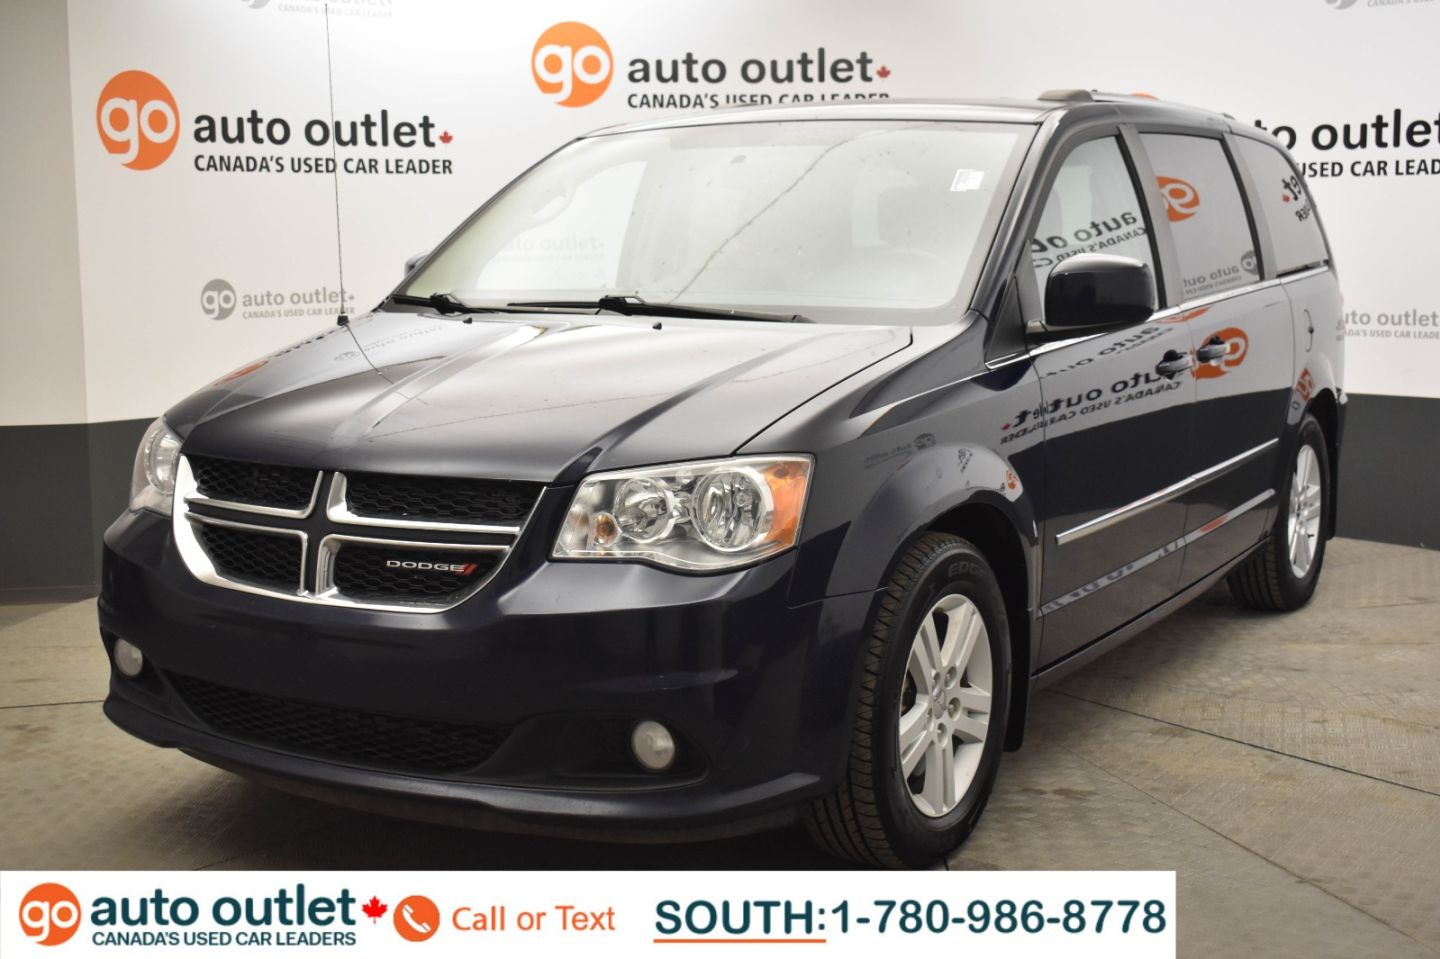 2015 Dodge Grand Caravan Crew Plus for sale in Leduc, Alberta